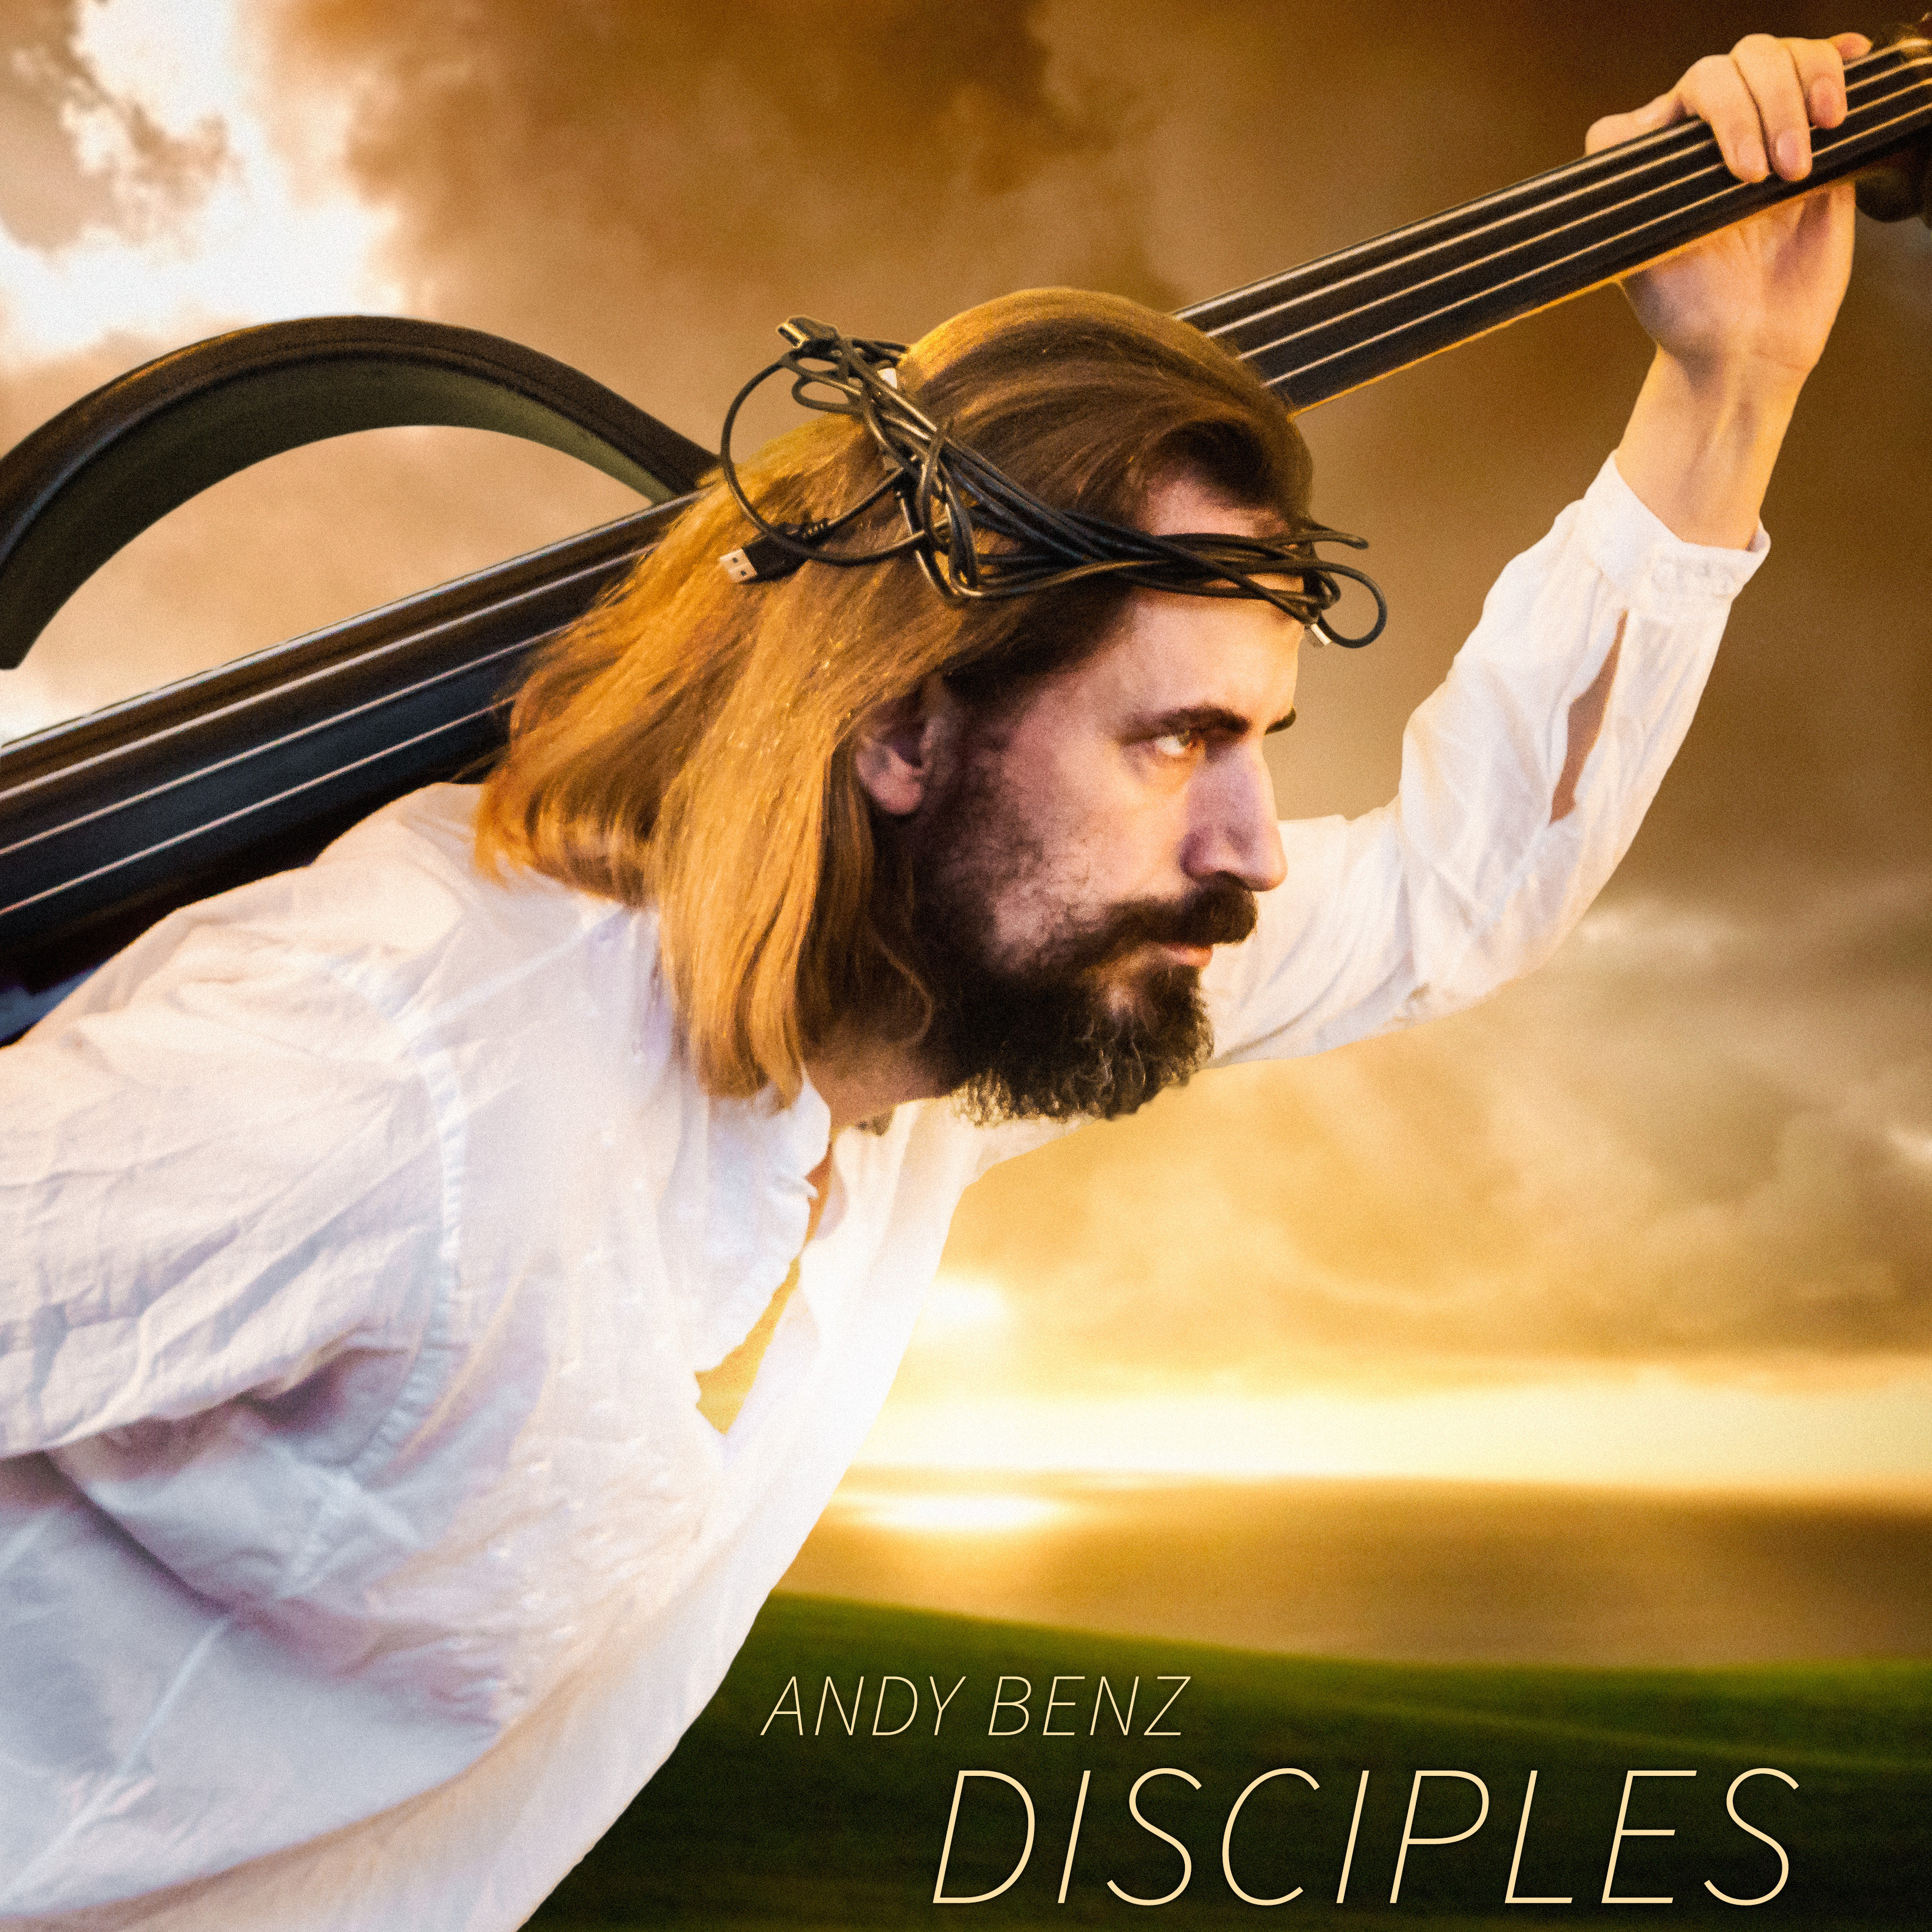 Cover photo from the album Andy Benz, Disciples. Contains music written and performed by Andreas Bennetzen. Click for link